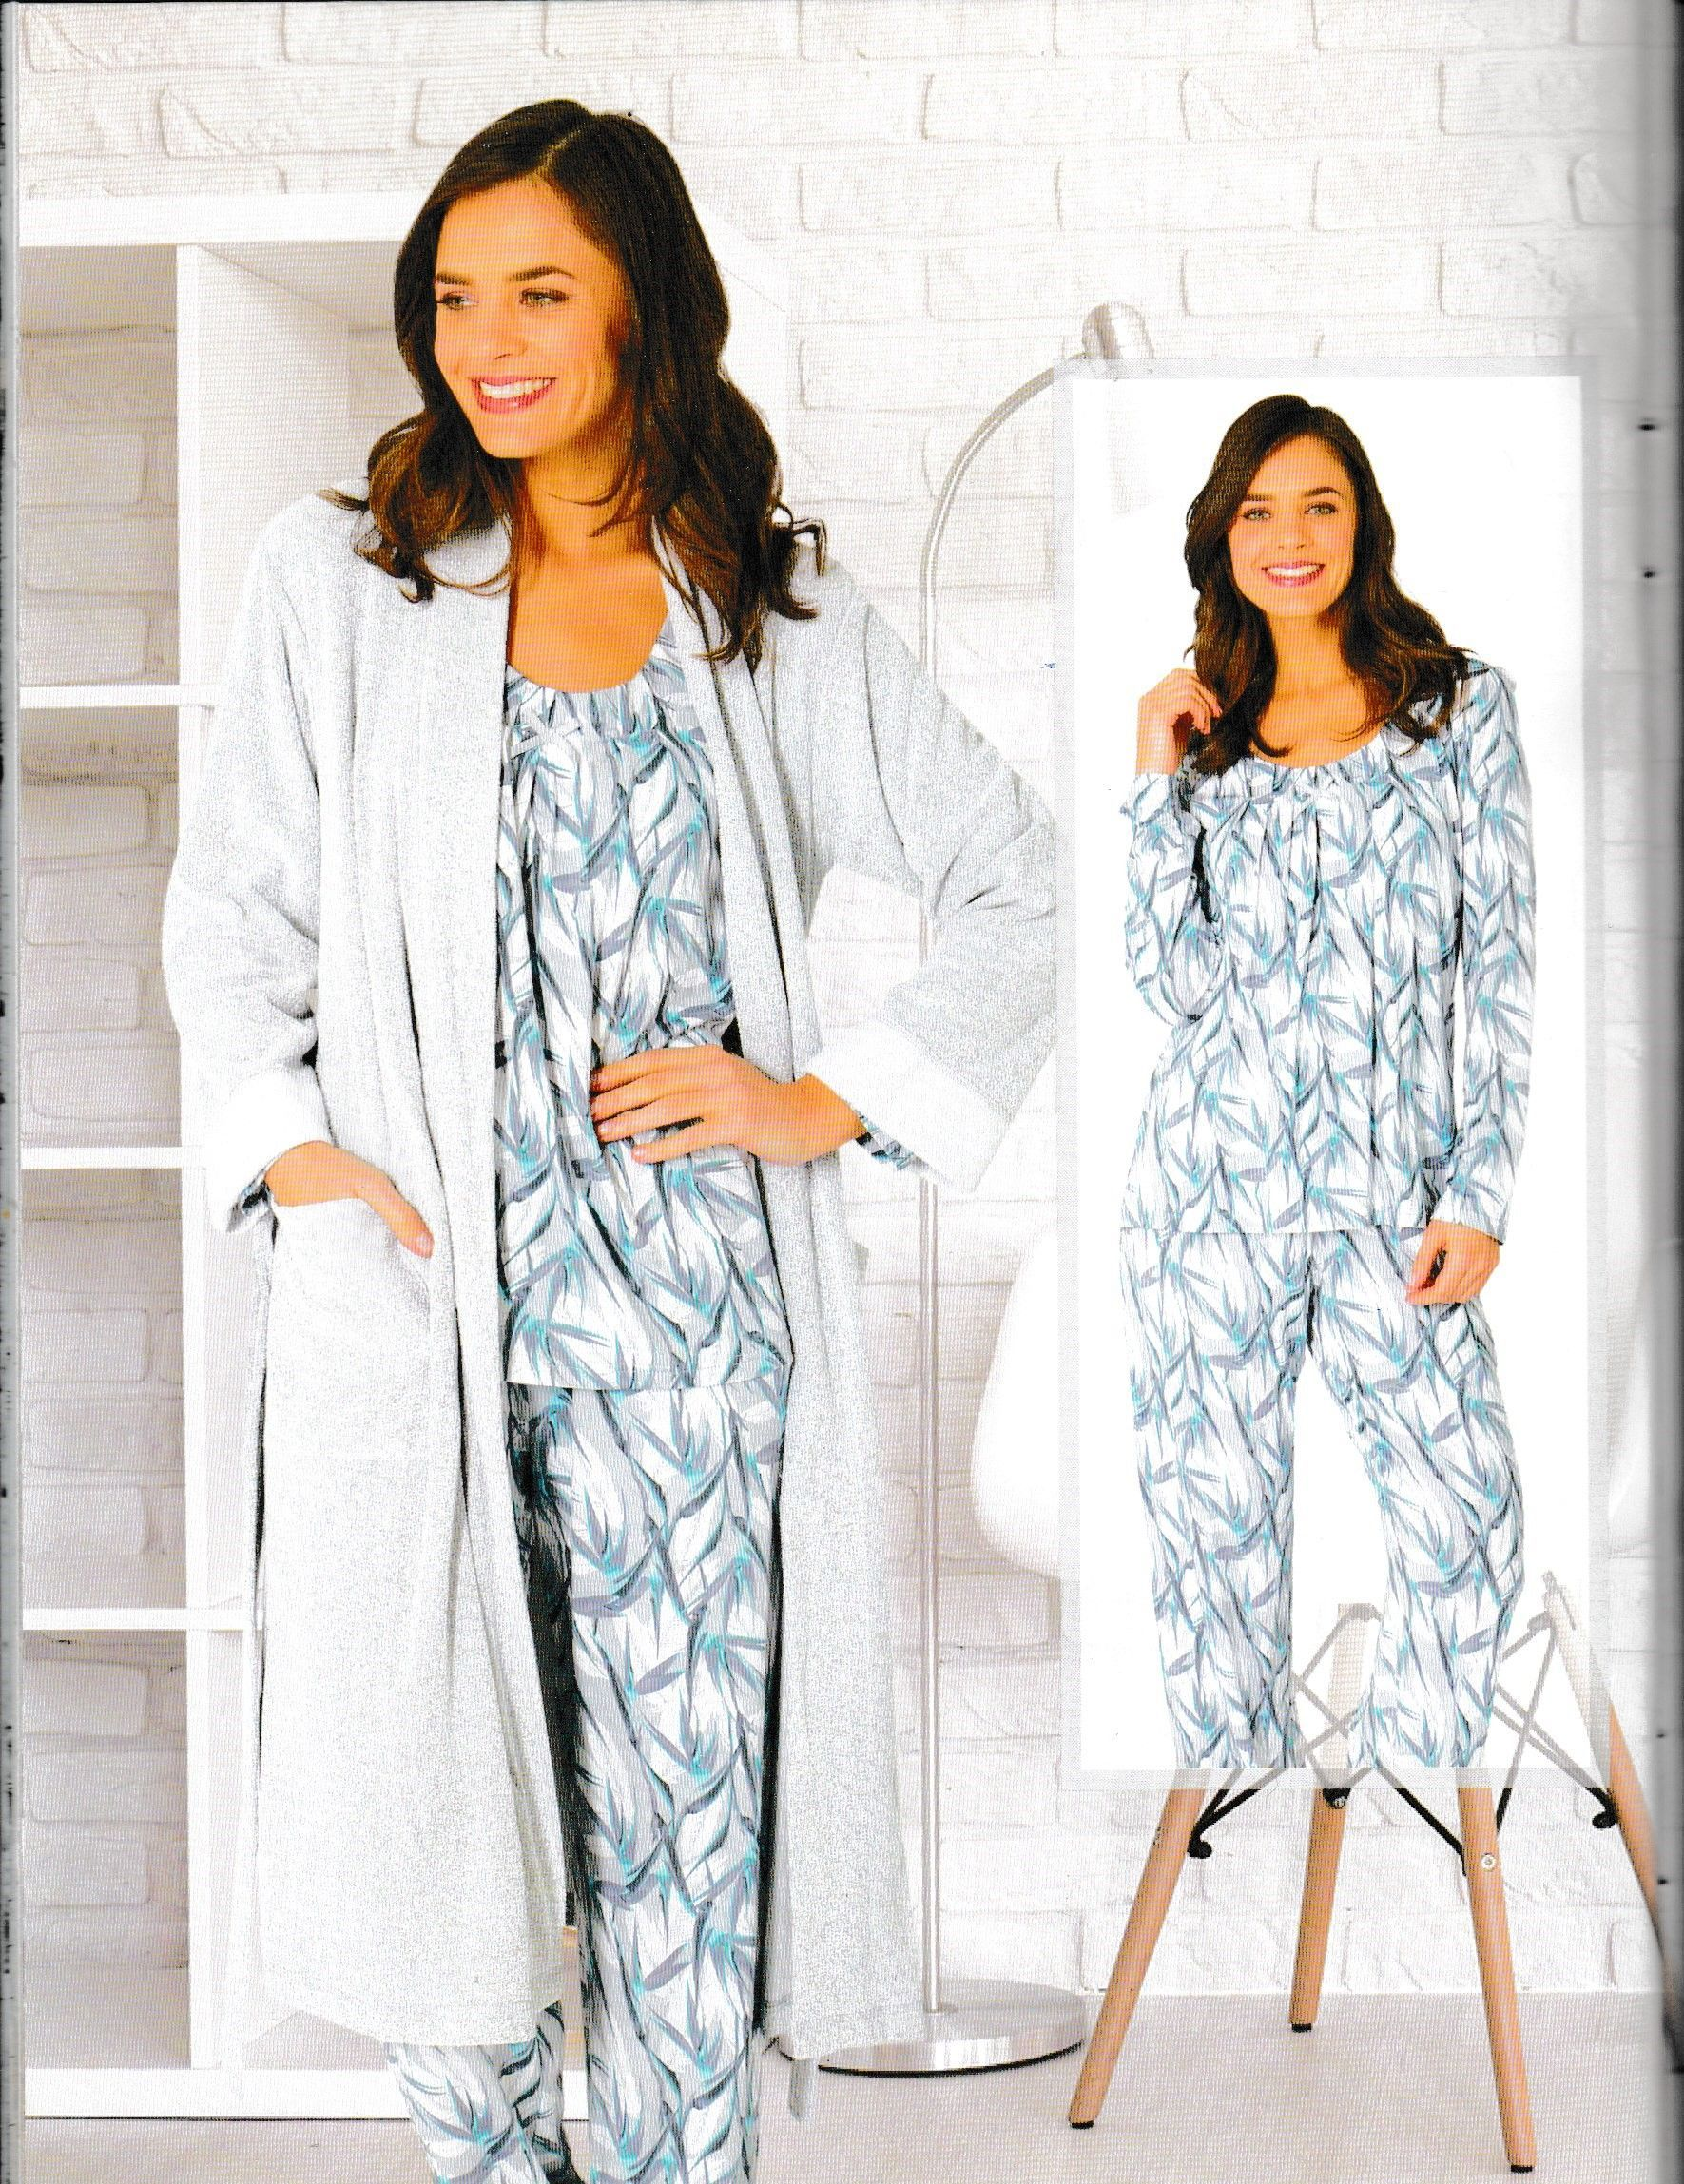 Winter night are better with Givoni sleepwear! #JustLovely #Givoni ...